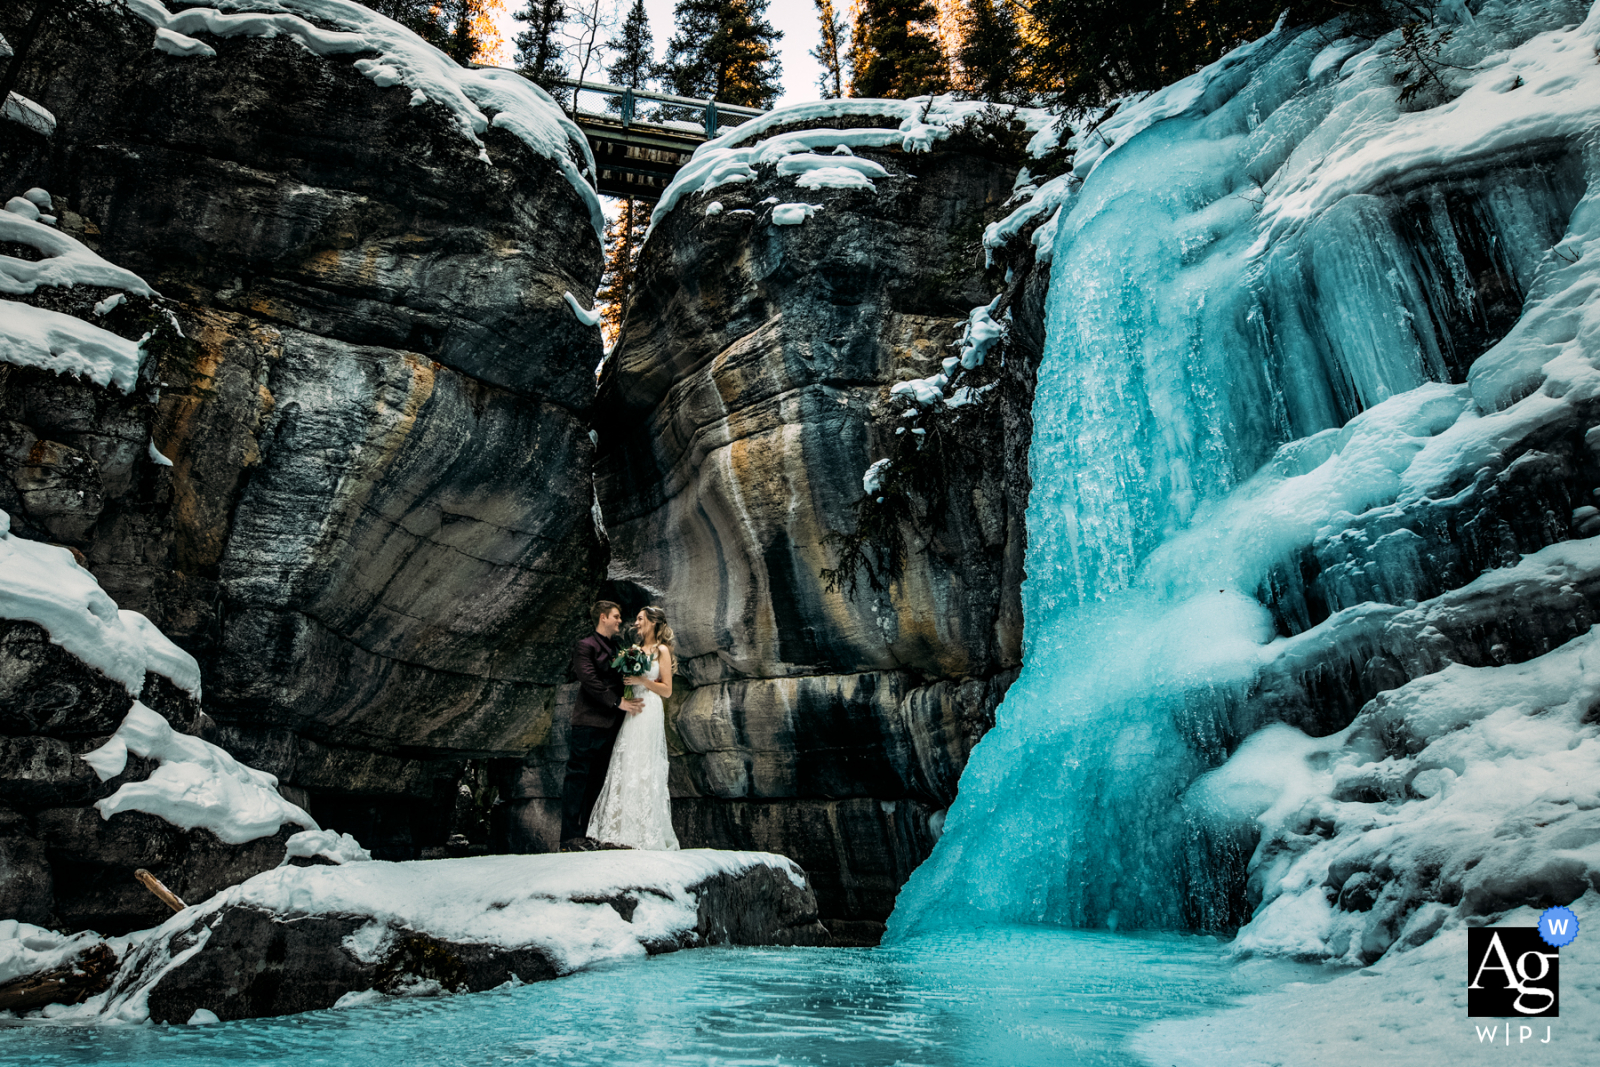 Maligne Canyon, AB, Canada artistic wedding photo of Love in the Canyon